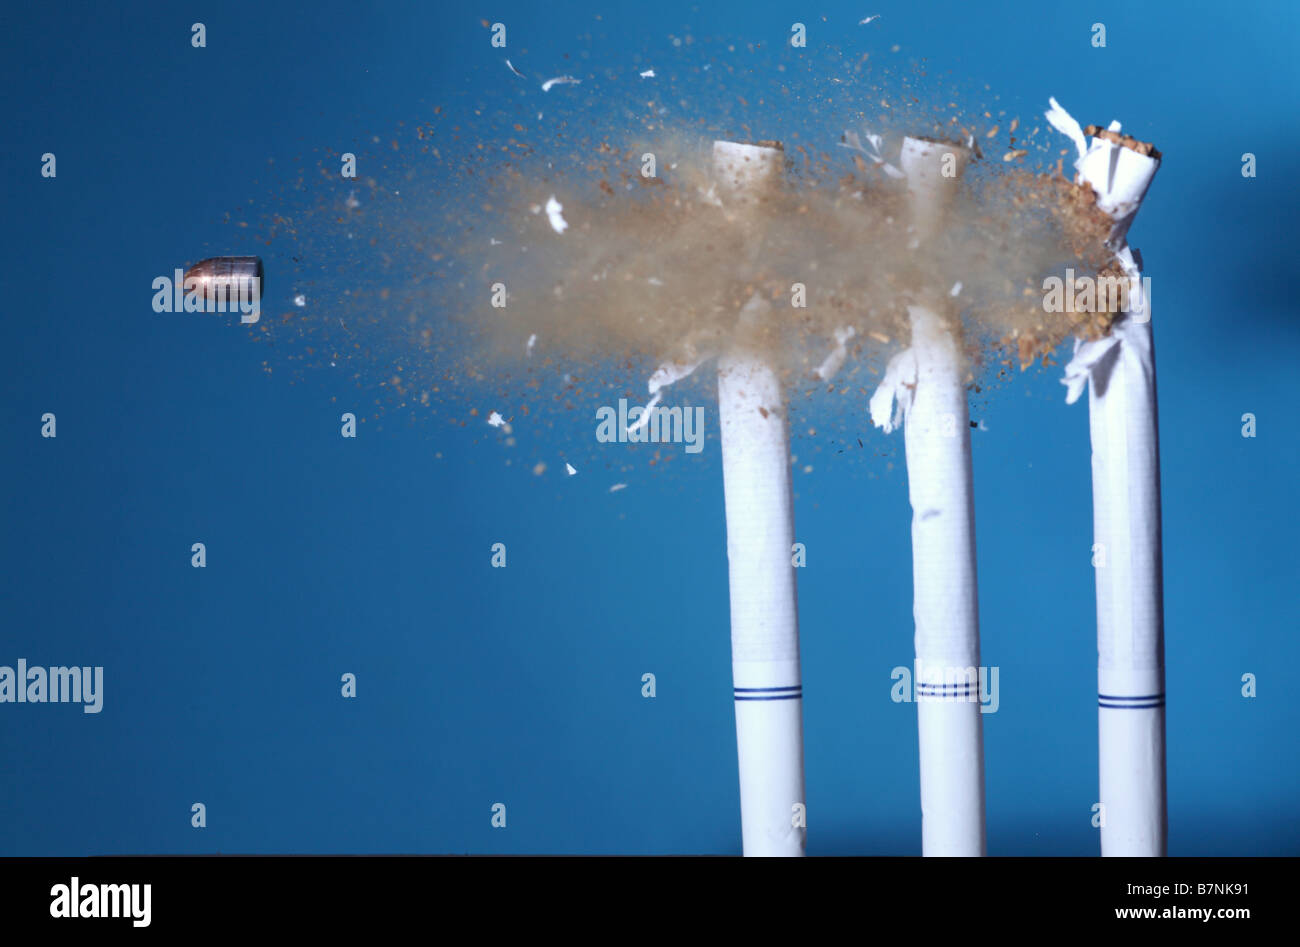 A bullet hitting cigarettes - Stock Image